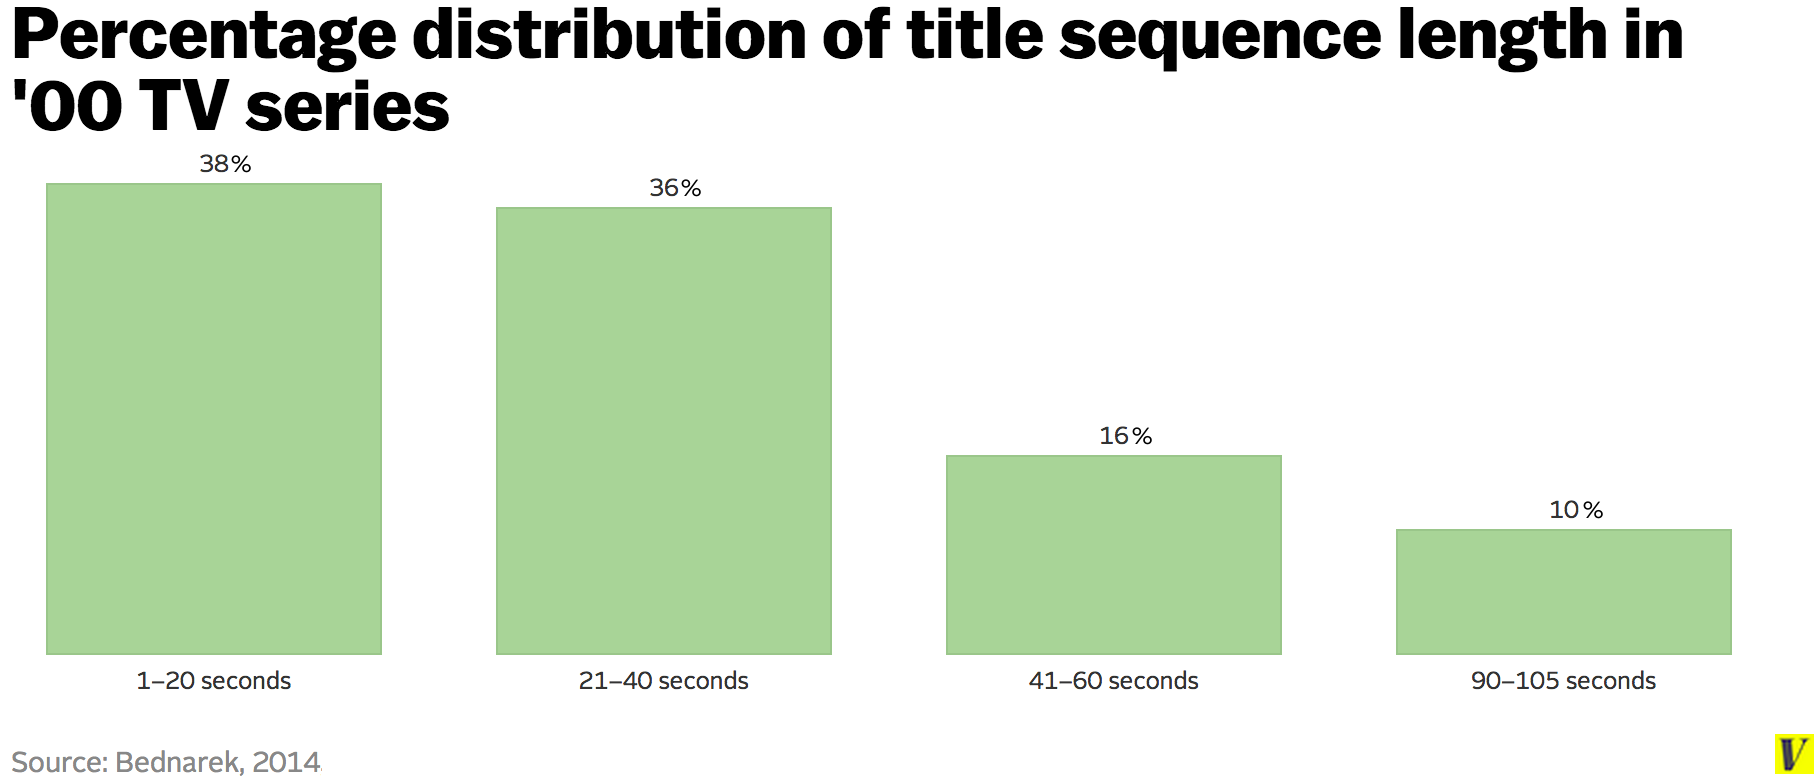 Percentage_distribution_of_title_sequence_length_in__00_tv_series